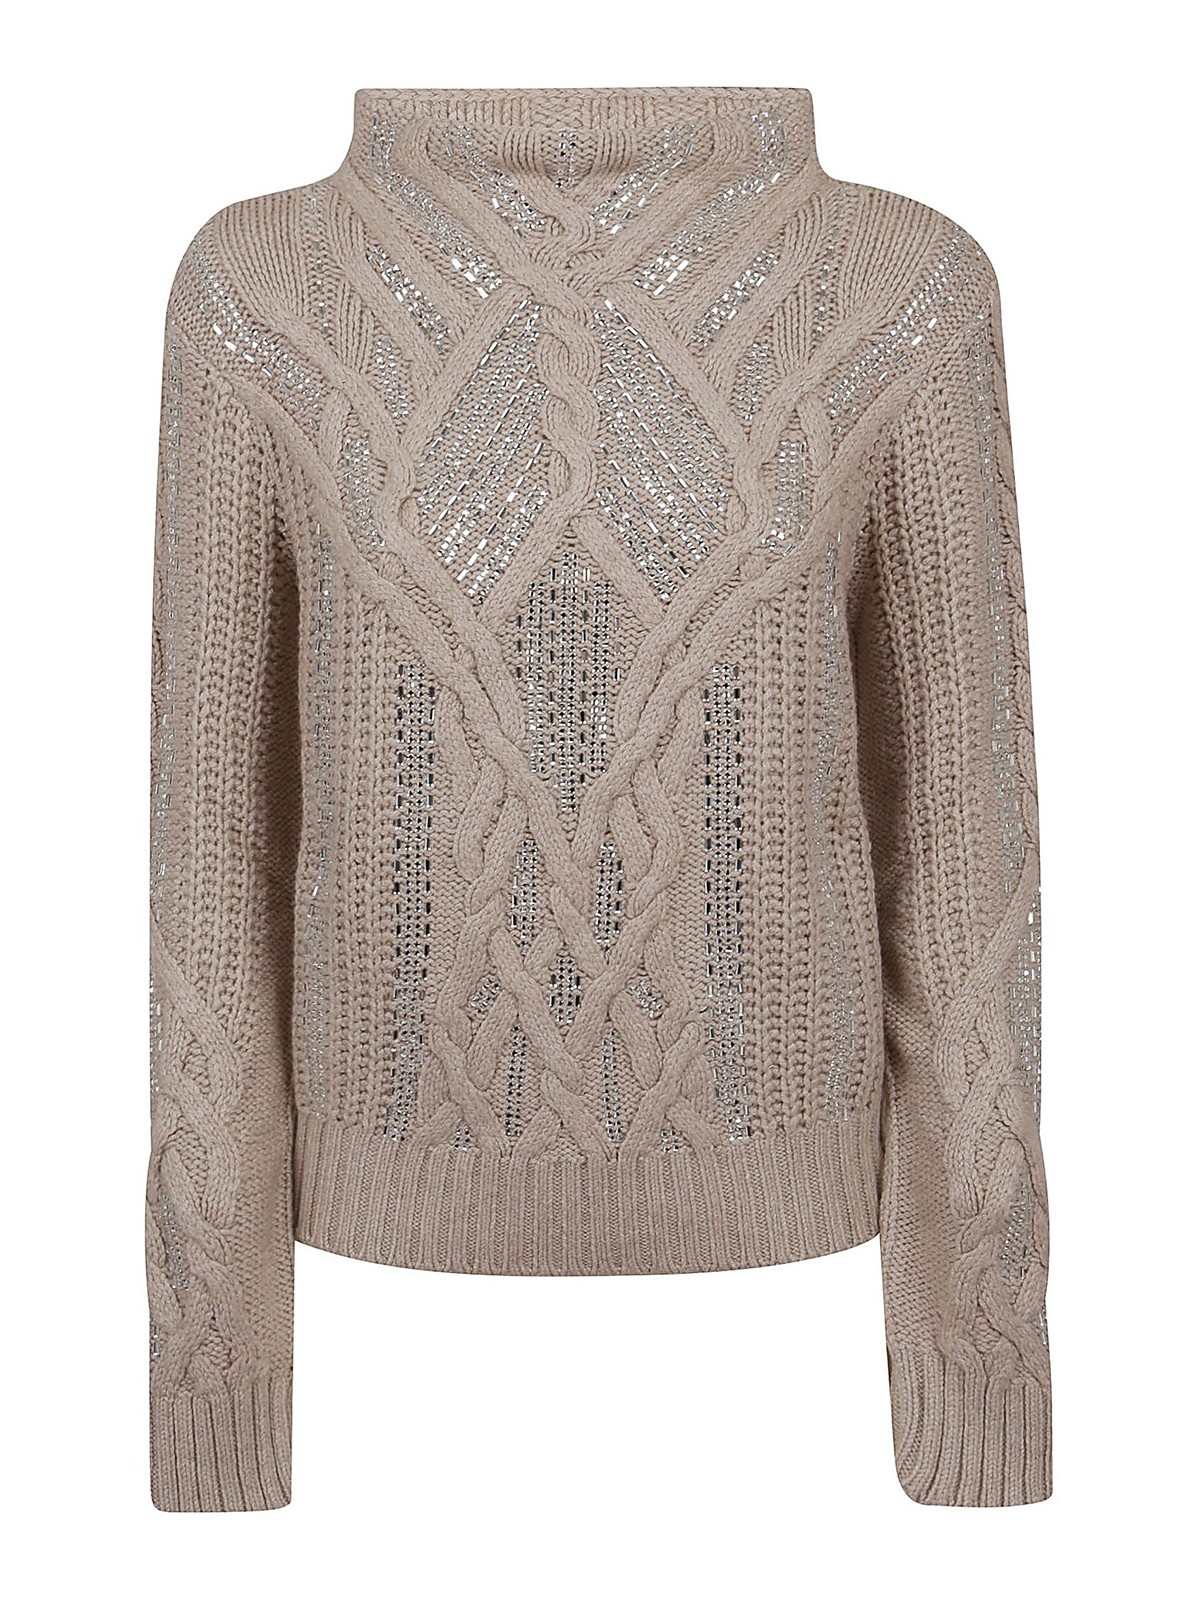 Ermanno Scervino CRYSTALS DETAILED WOOL BLEND SWEATER